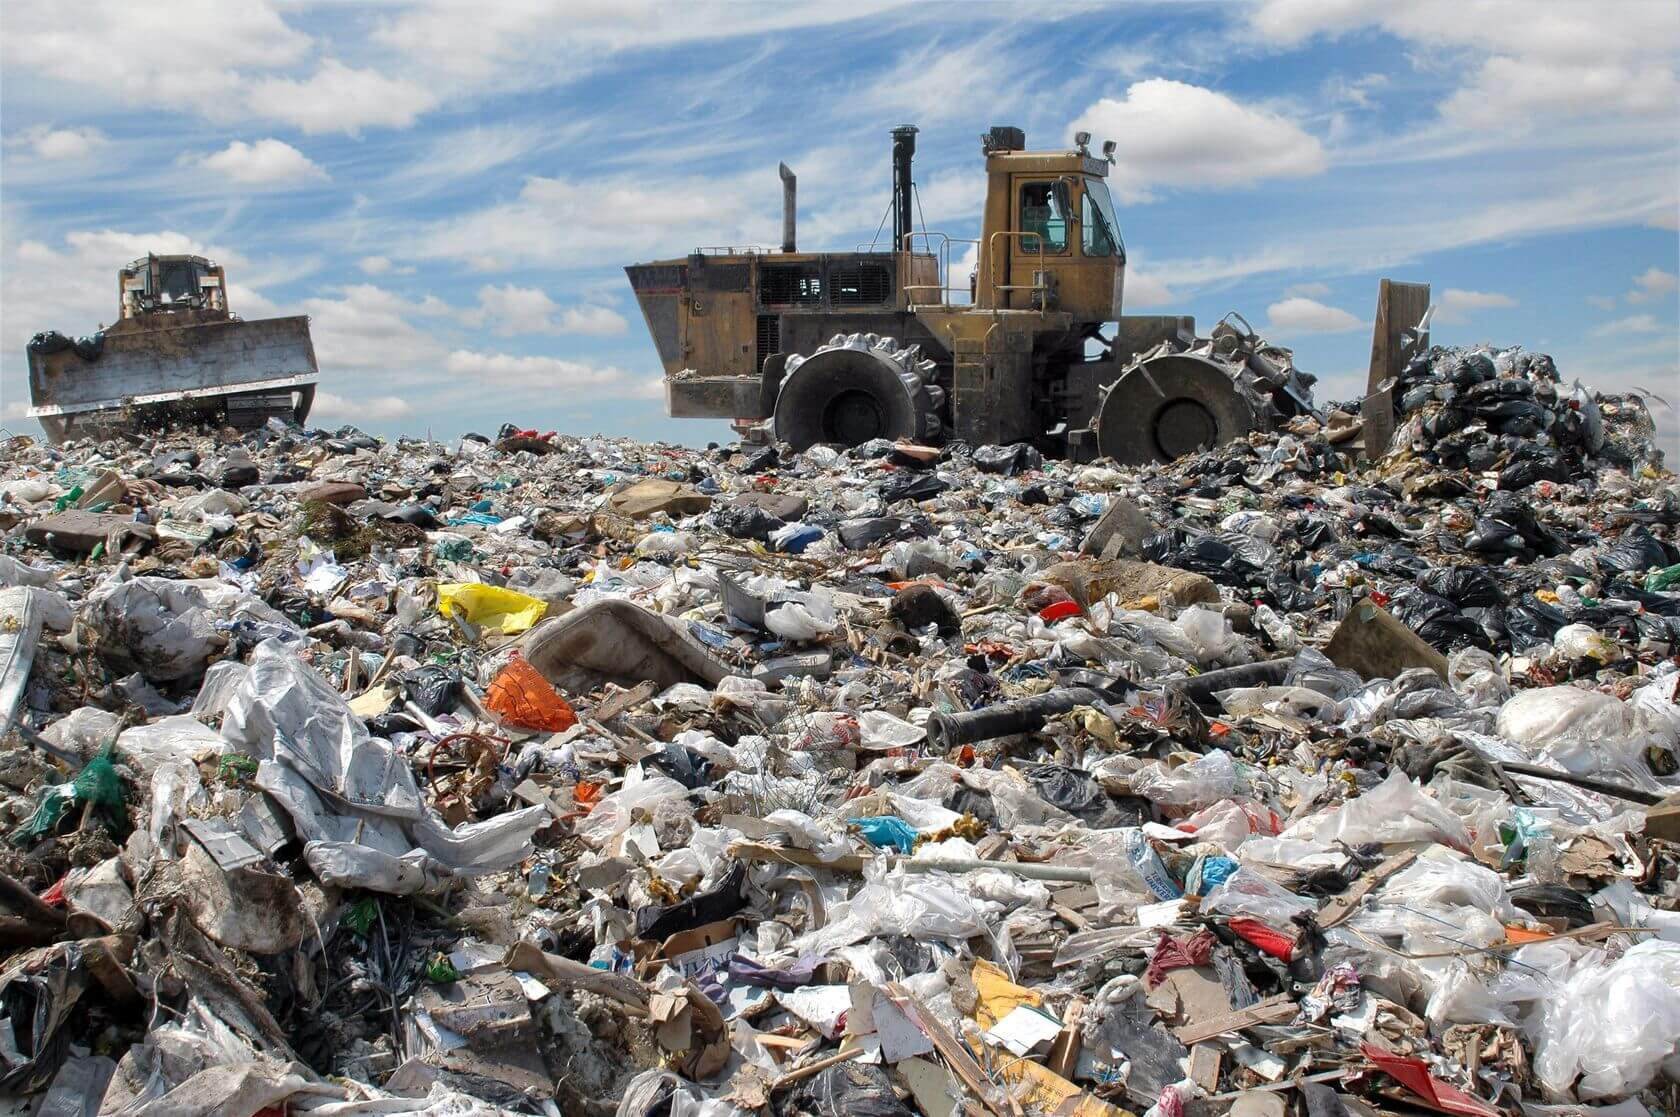 Recycling con: Millions of tons end up in landfill as officials admit success is exaggerated